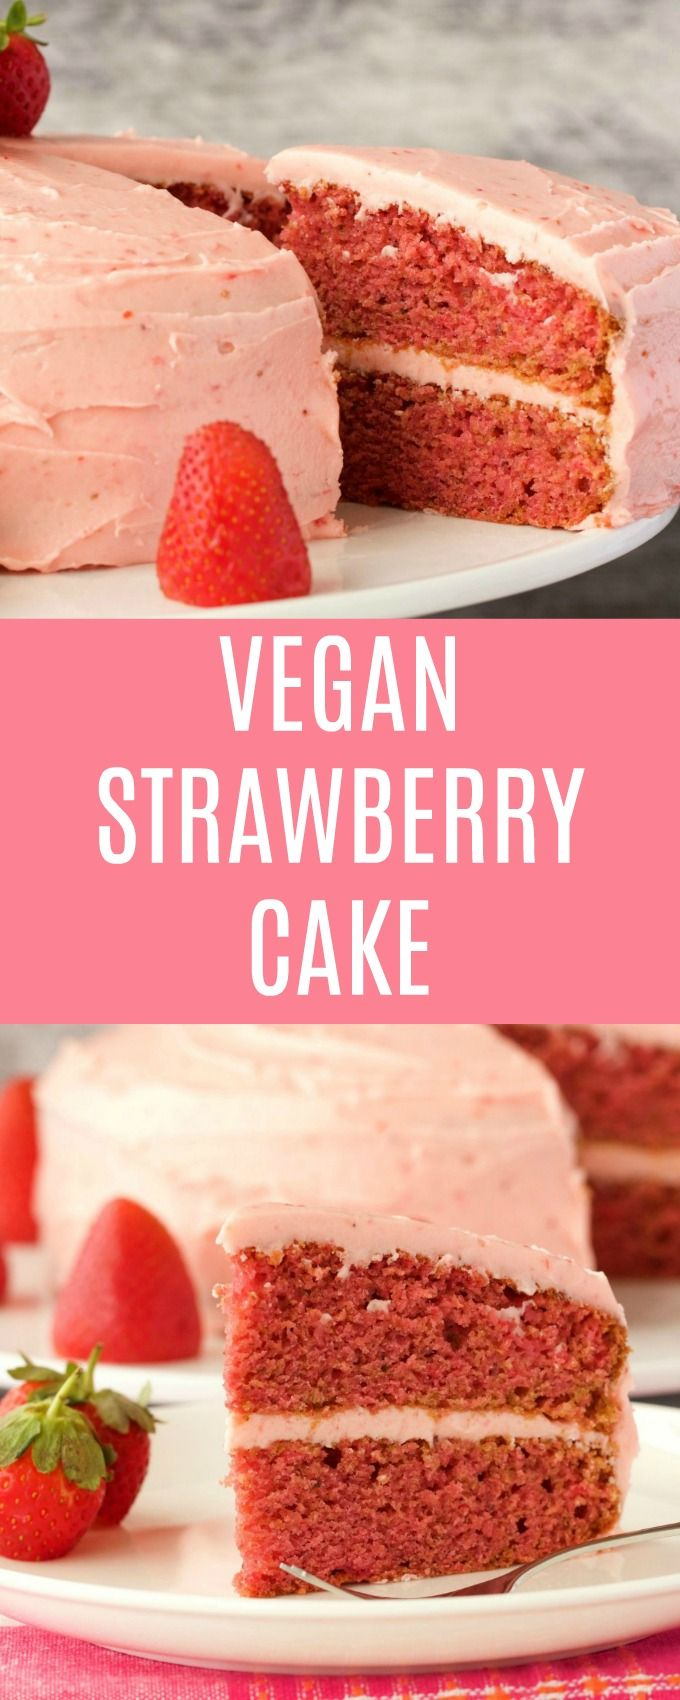 Light, fluffy and deliciously moist vegan strawberry cake with strawberry frosting. This pretty pink cake is packed with strawberry flavor and goodness. | Posted By: DebbieNet.com